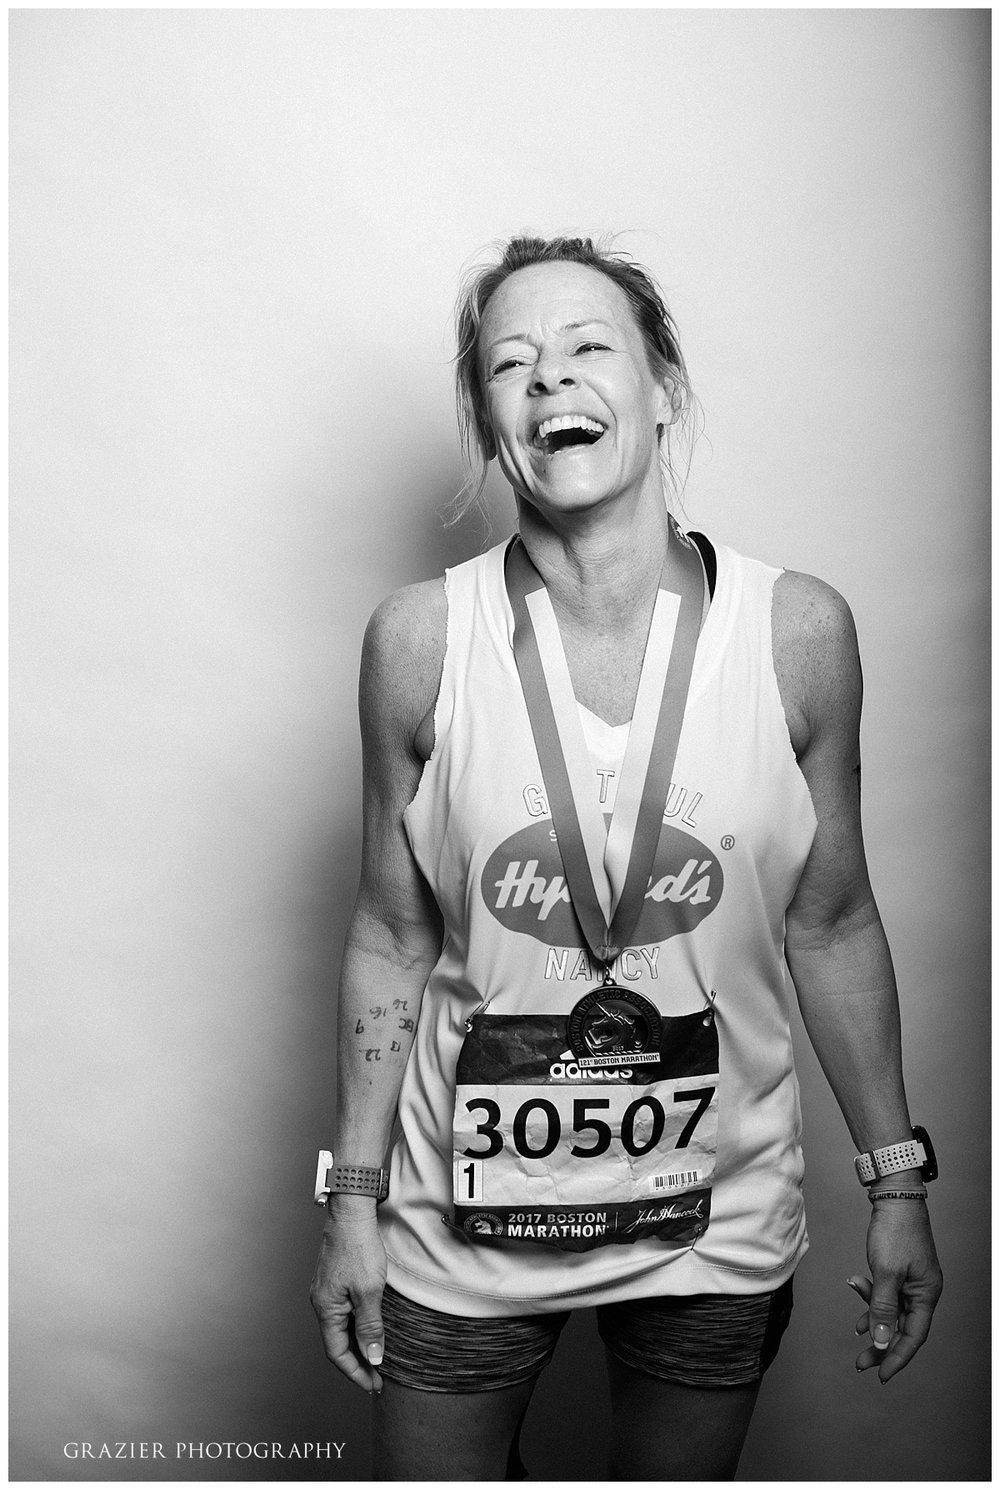 Grazier_Photo_Hylands_Boston_Marathon_2017-25_WEB.jpg